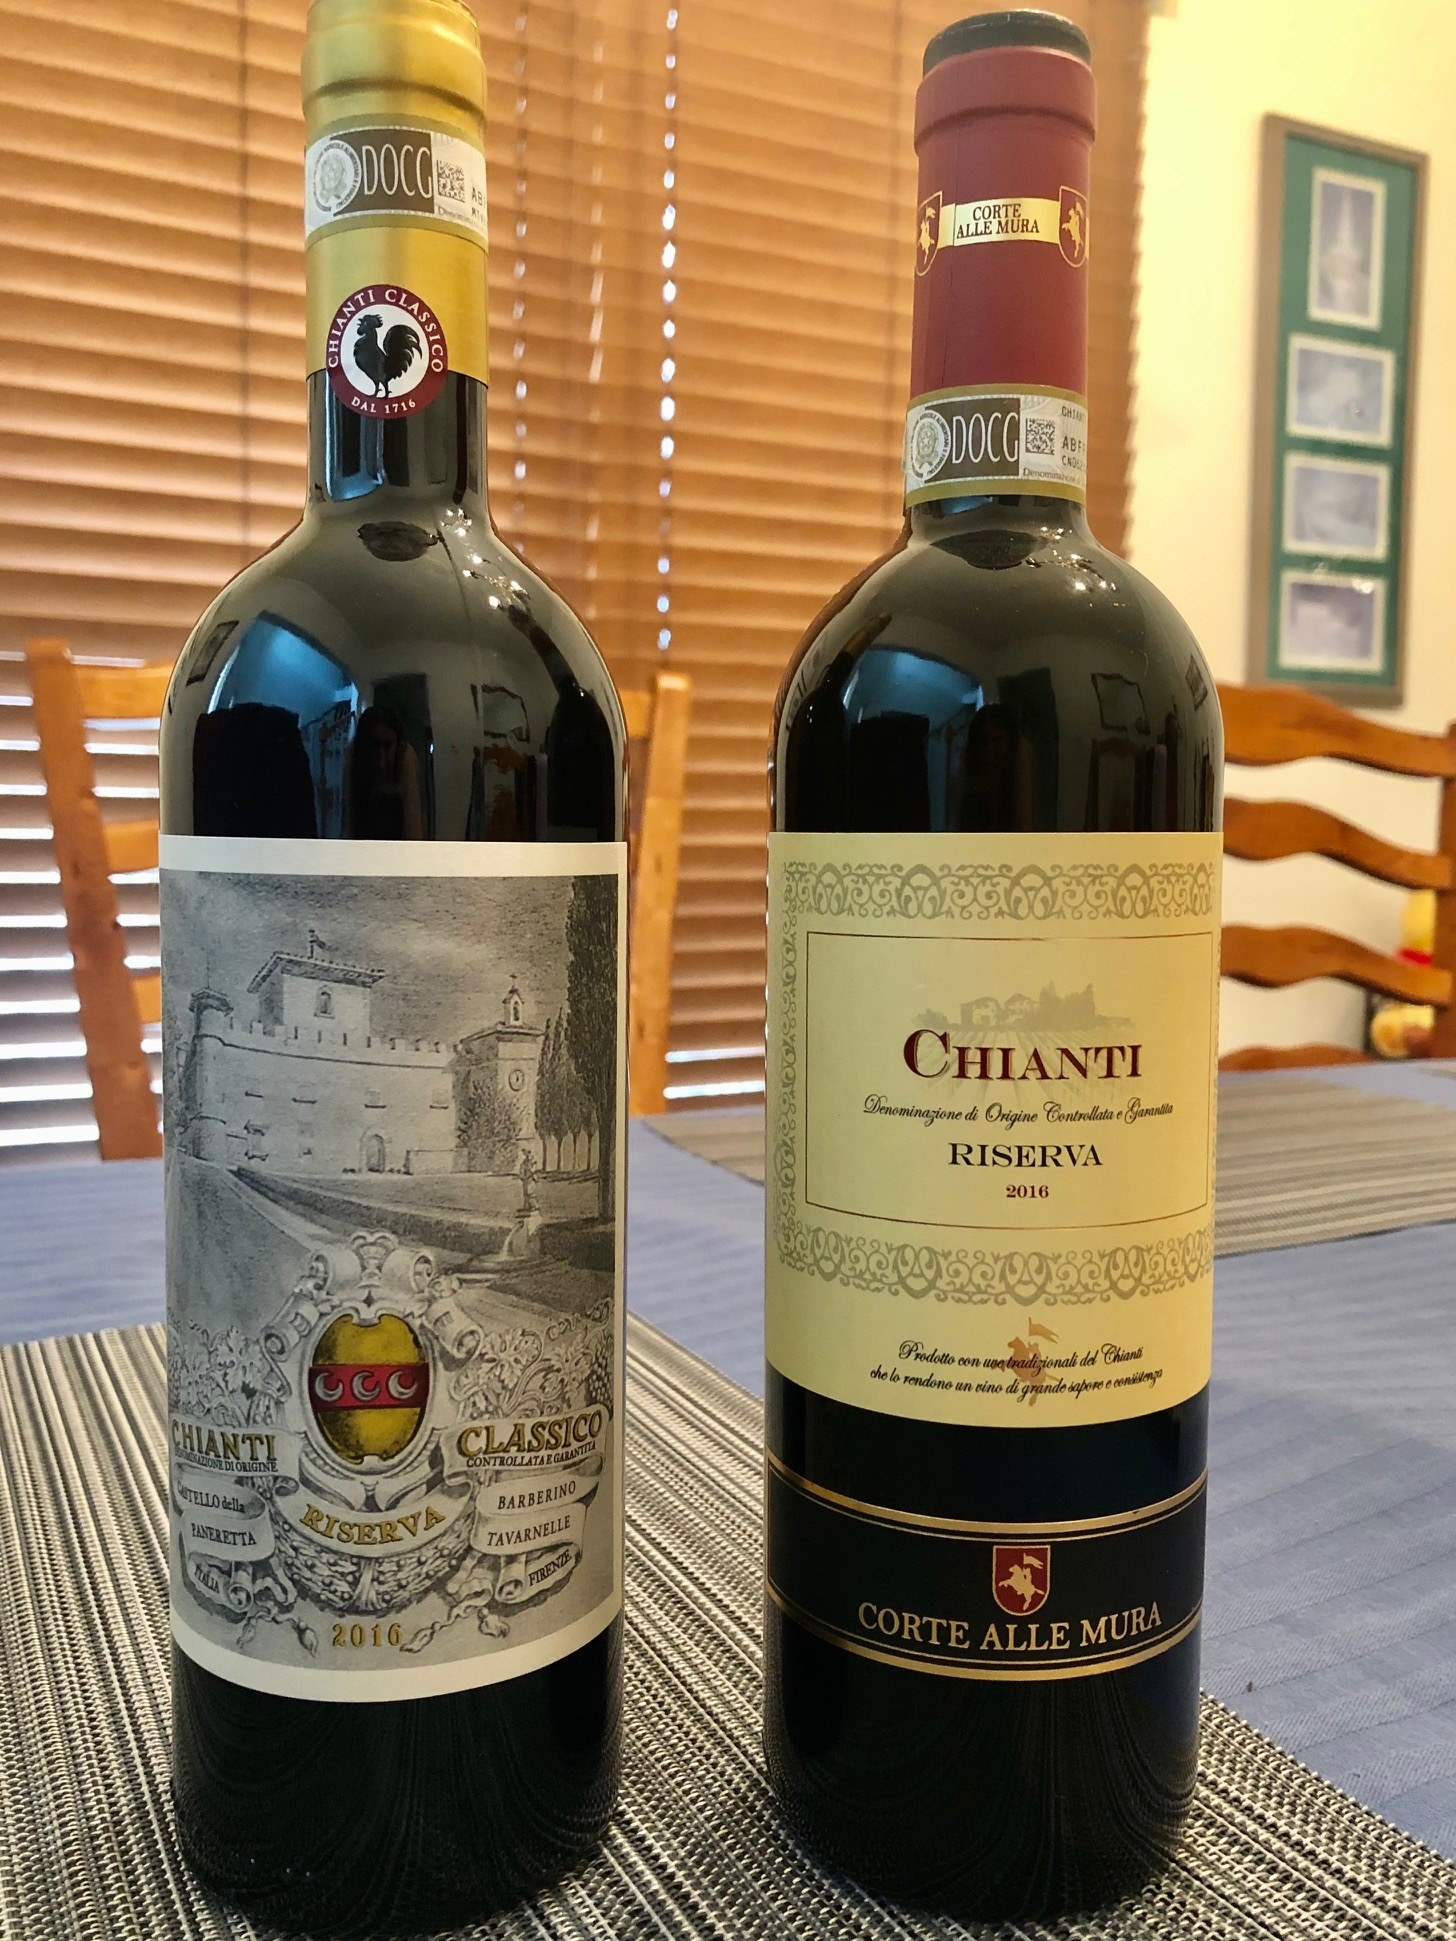 Two bottles of Chianti wine on a table